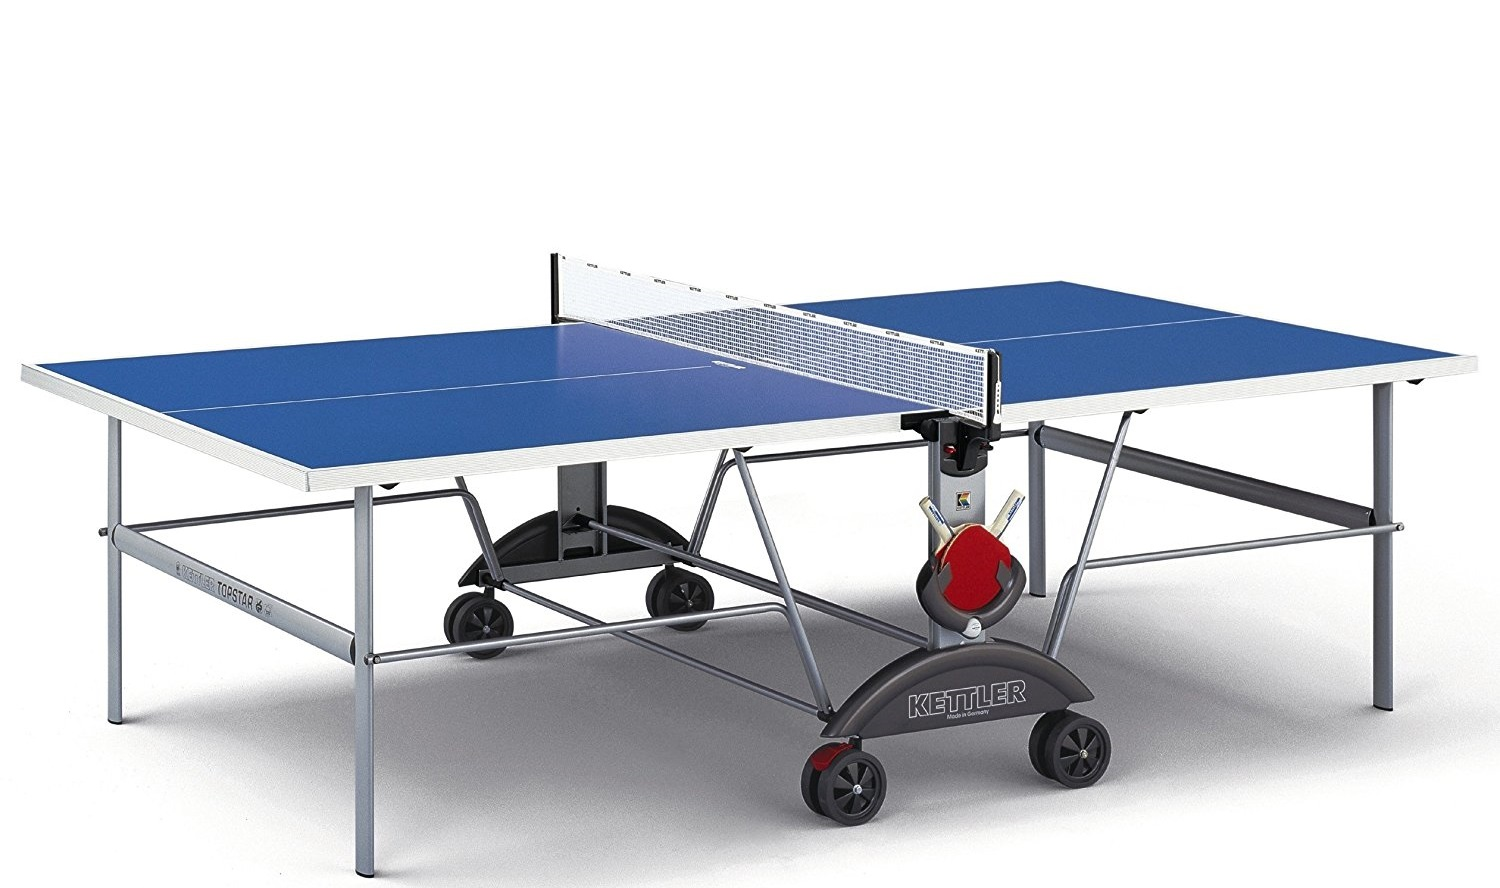 Kettler Top Star XL Indoor/Outdoor Waterproof Table Tennis Table - Includes 4 Wheels and Space Saver Technology